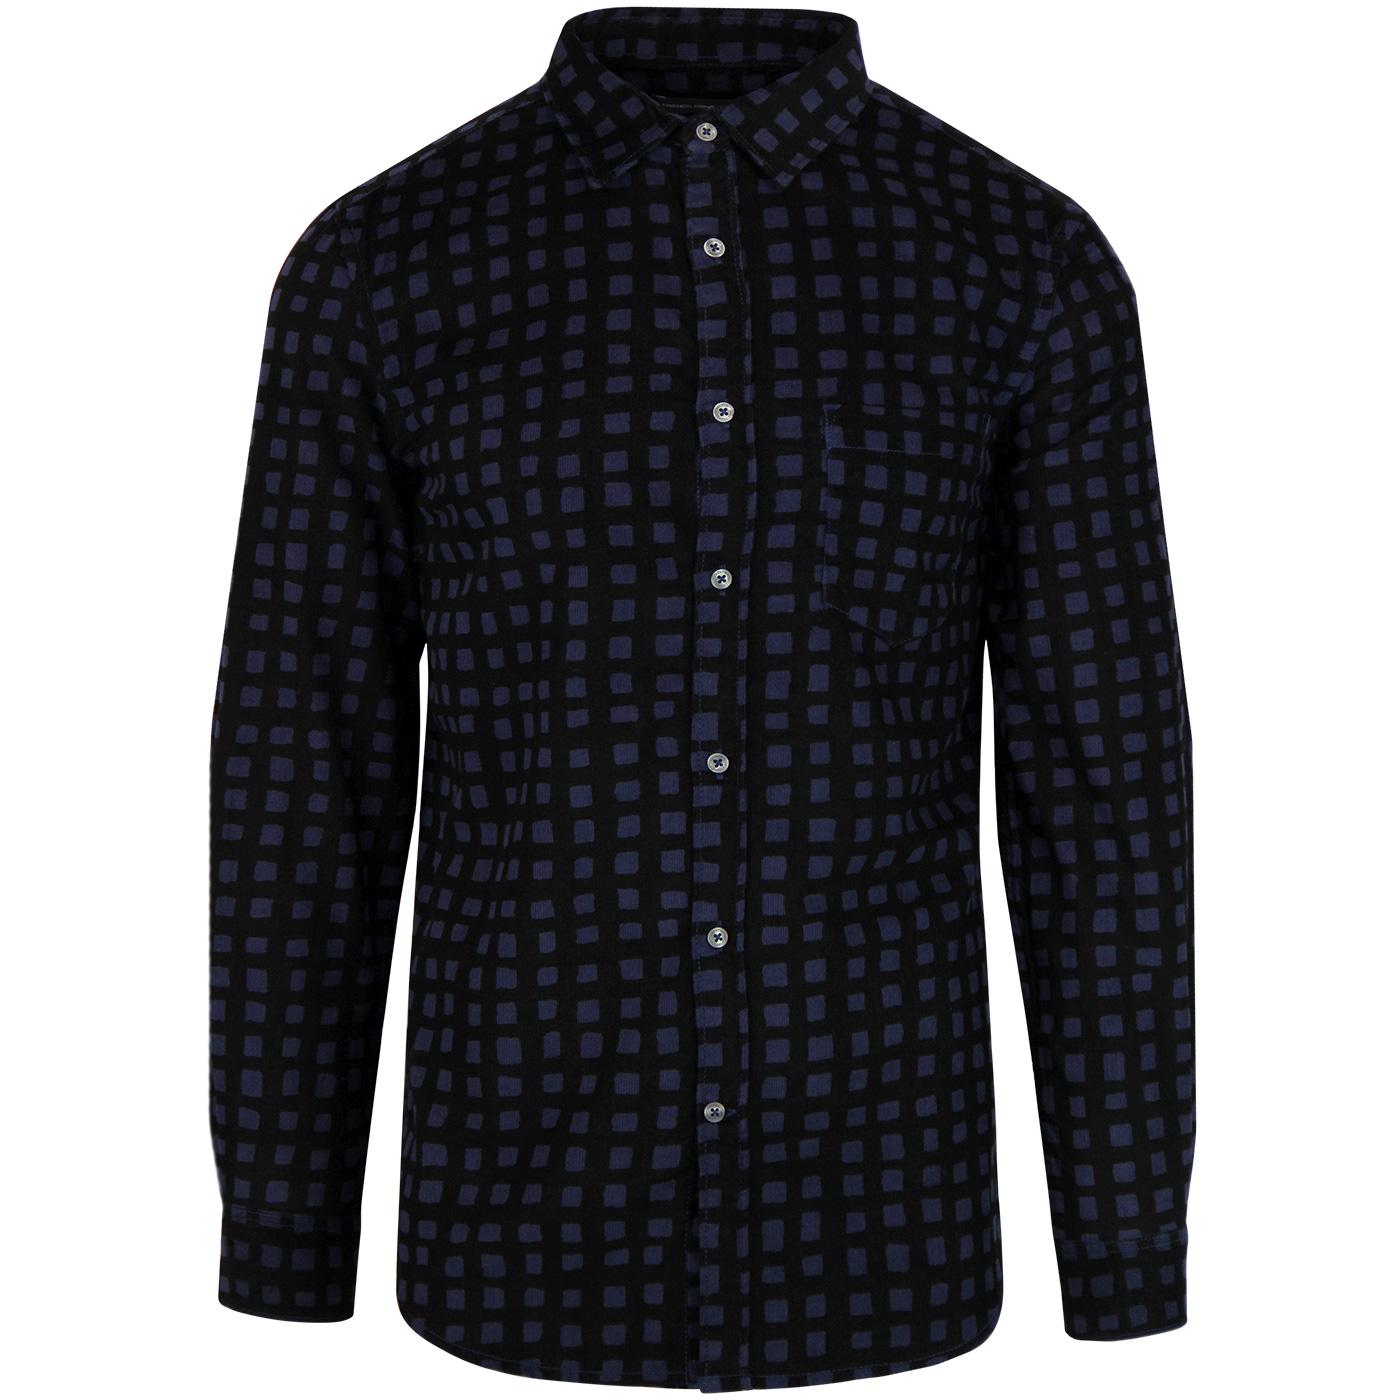 FRENCH CONNECTION Retro Mod Gridlock Cord Shirt